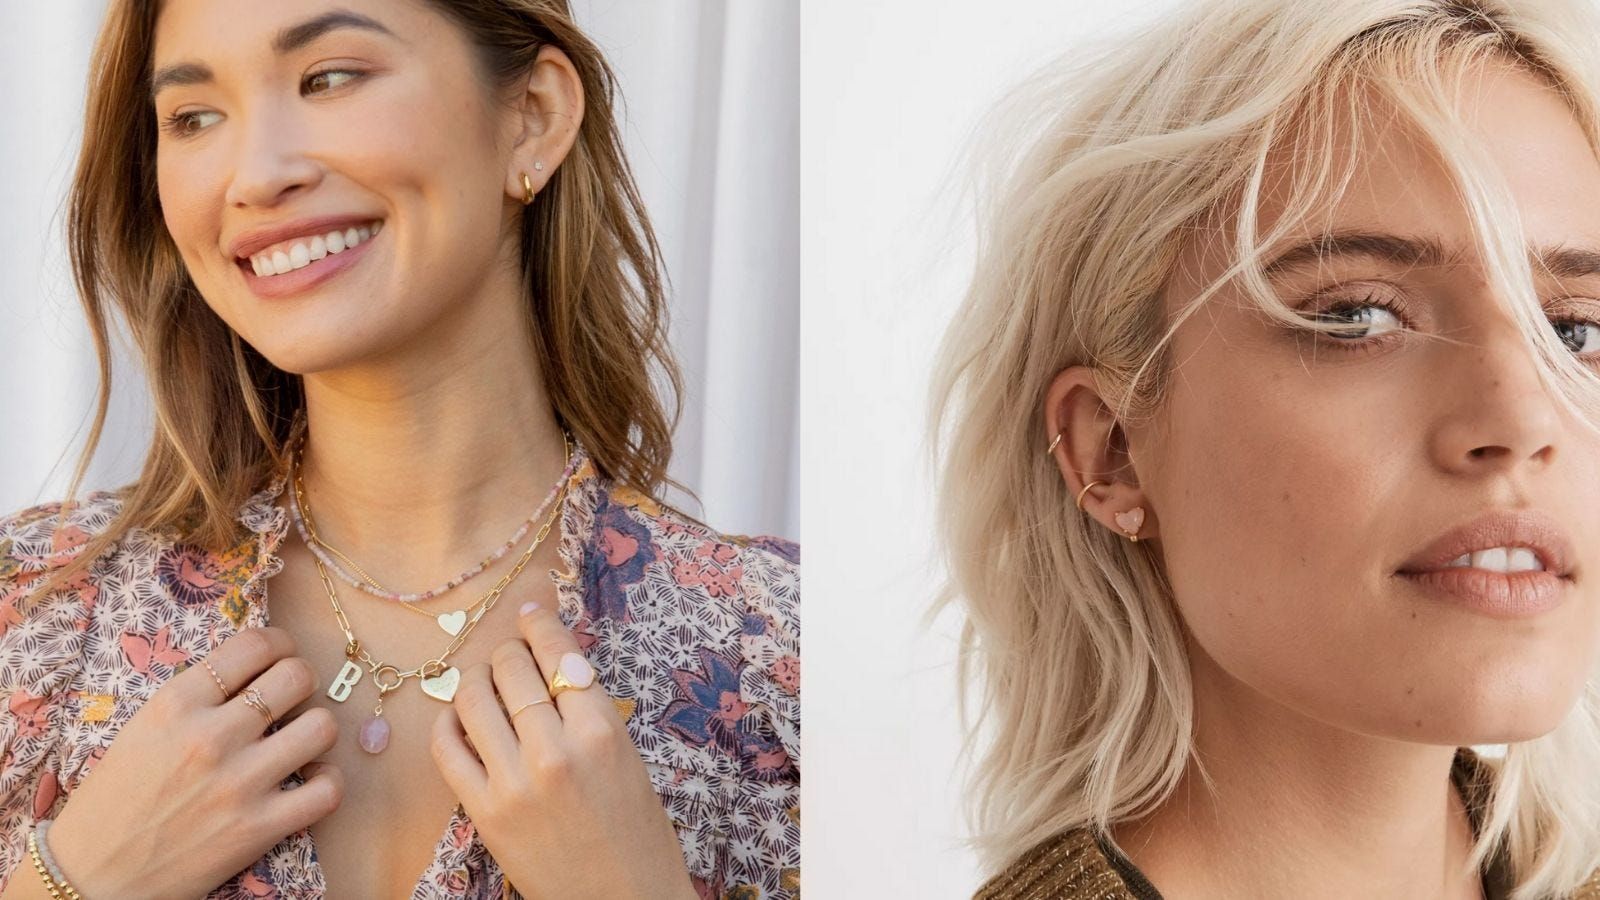 The 10 best places you can buy Valentine's Day jewelry online